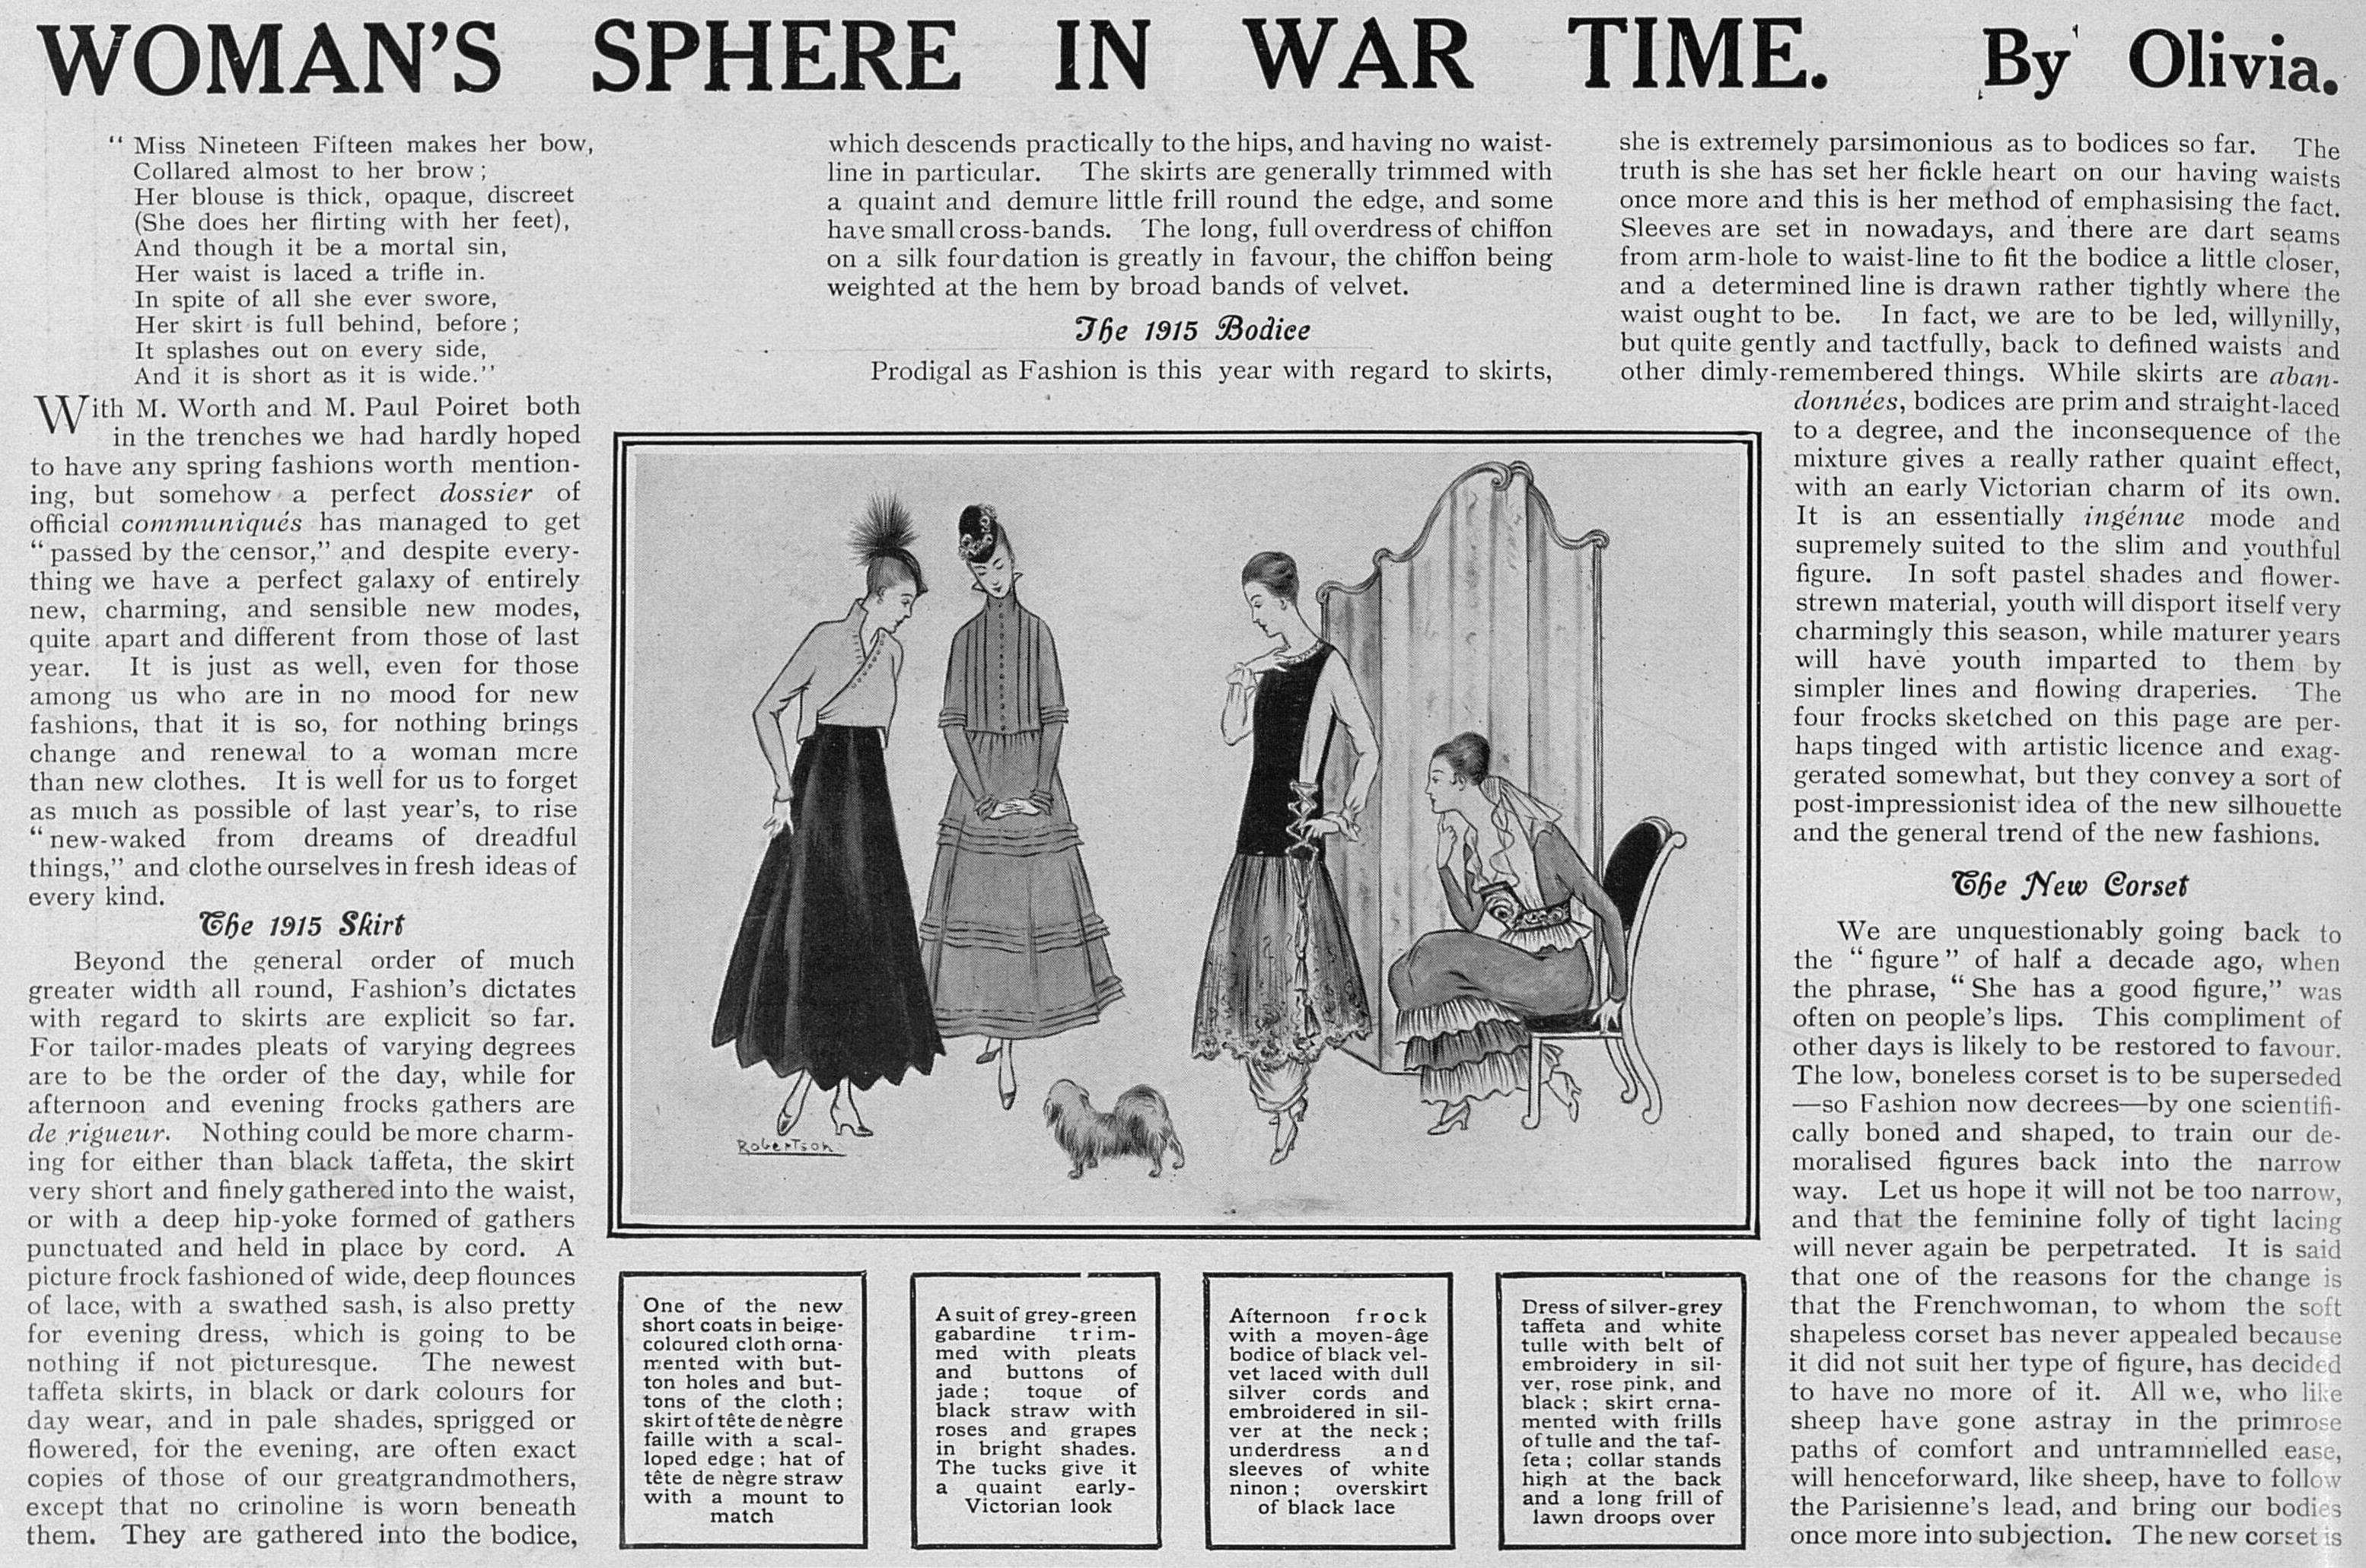 WomansSphereInWarTime_30Mar1915